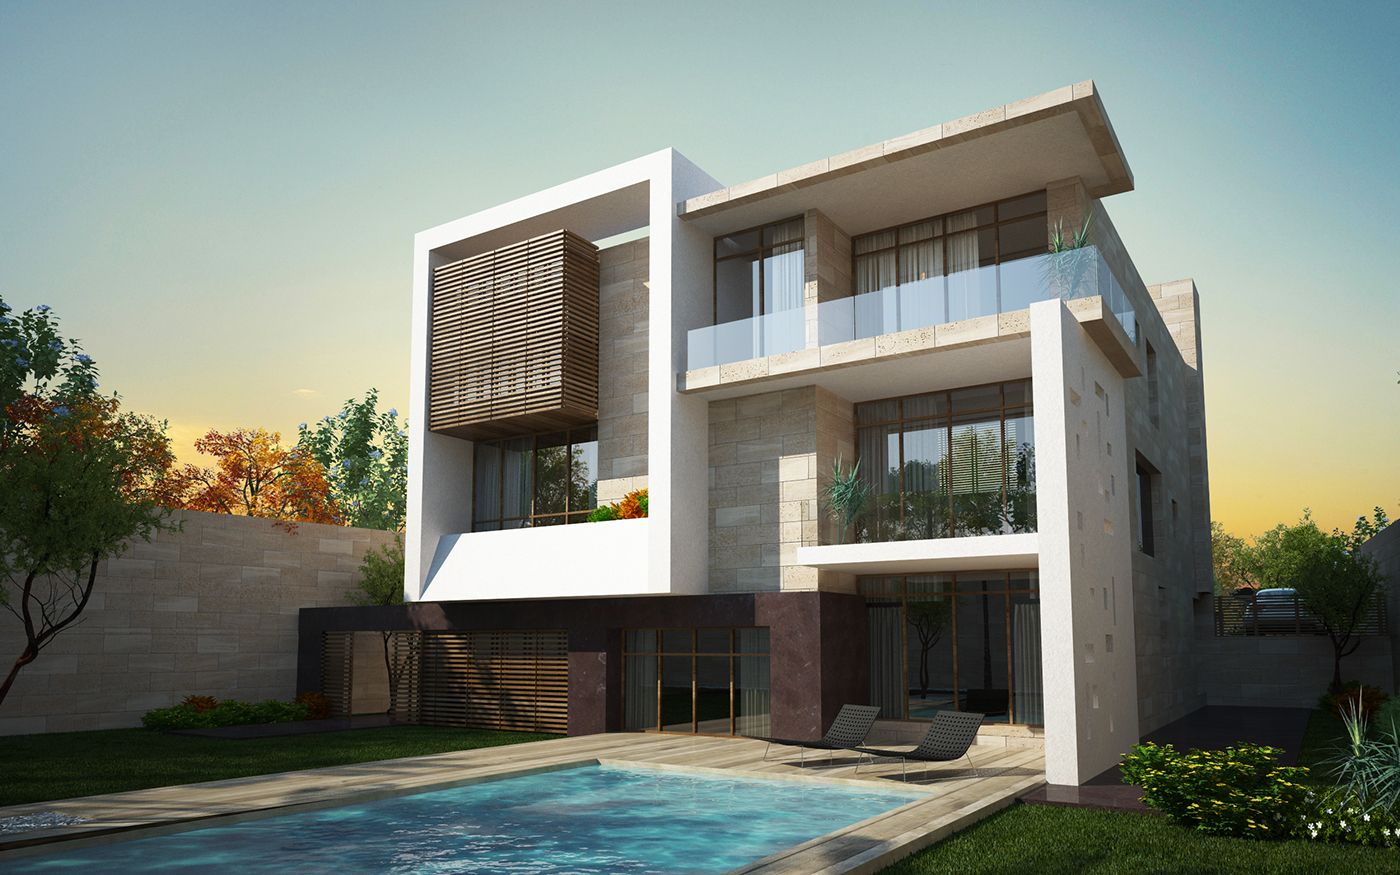 Top 10 houses of this week 27062015 architecture design for Top home plans